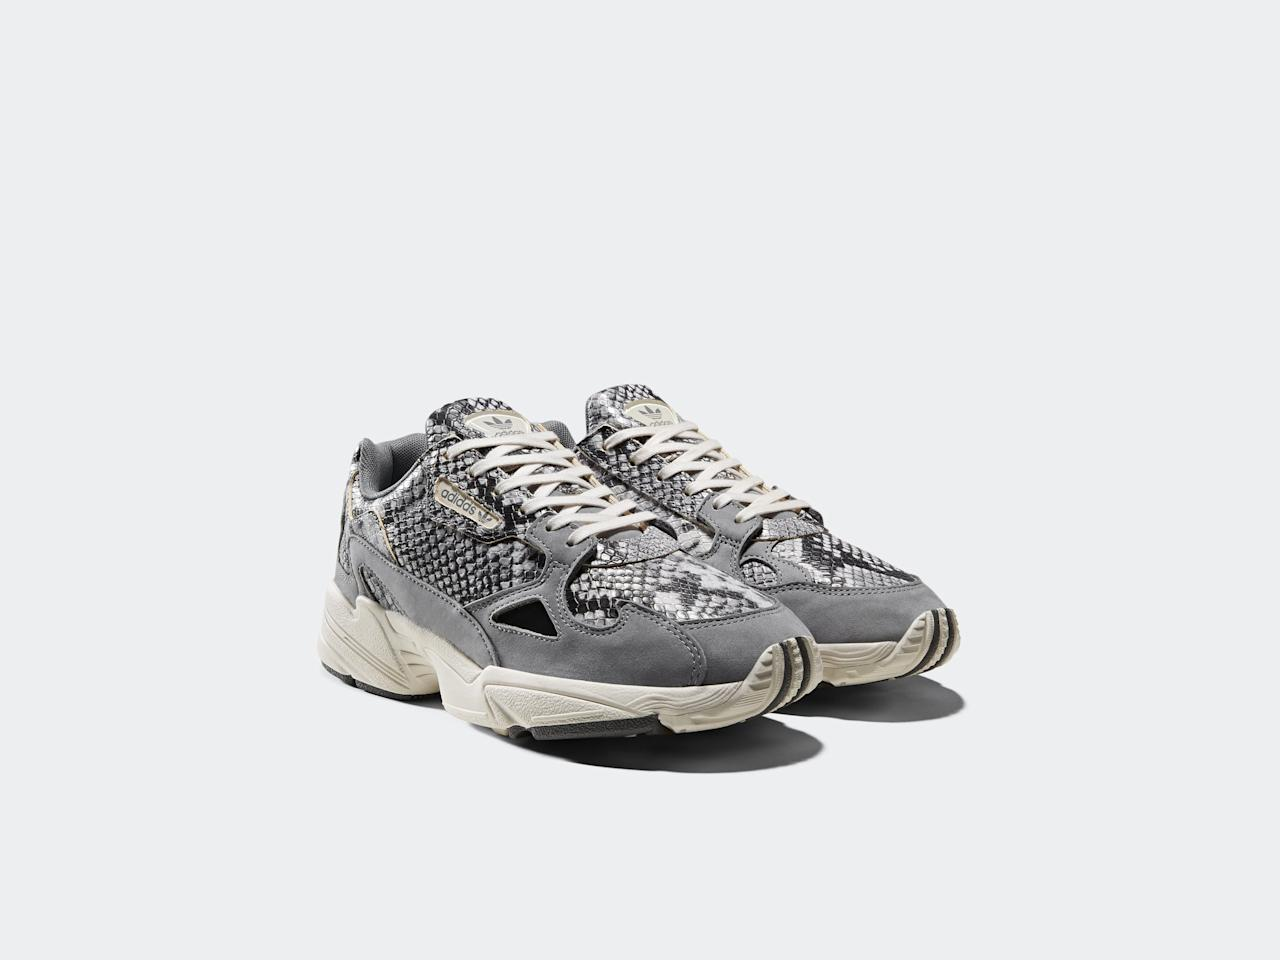 """<p><a href=""""https://www.popsugar.com/buy/Adidas-Originals-Falcon-Shoes-480942?p_name=Adidas%20Originals%20Falcon%20Shoes&retailer=adidas.com&pid=480942&price=120&evar1=fab%3Auk&evar9=46507234&evar98=https%3A%2F%2Fwww.popsugar.com%2Ffashion%2Fphoto-gallery%2F46507234%2Fimage%2F46507238%2FAdidas-Originals-Falcon-Shoes&list1=shoes%2Csneakers%2Cadidas%2Ccollections&prop13=api&pdata=1"""" rel=""""nofollow"""" data-shoppable-link=""""1"""" target=""""_blank"""" class=""""ga-track"""" data-ga-category=""""Related"""" data-ga-label=""""https://www.adidas.com/us/continental-80-shoes/EH0169.html"""" data-ga-action=""""In-Line Links"""">Adidas Originals Falcon Shoes</a> ($120)</p>"""